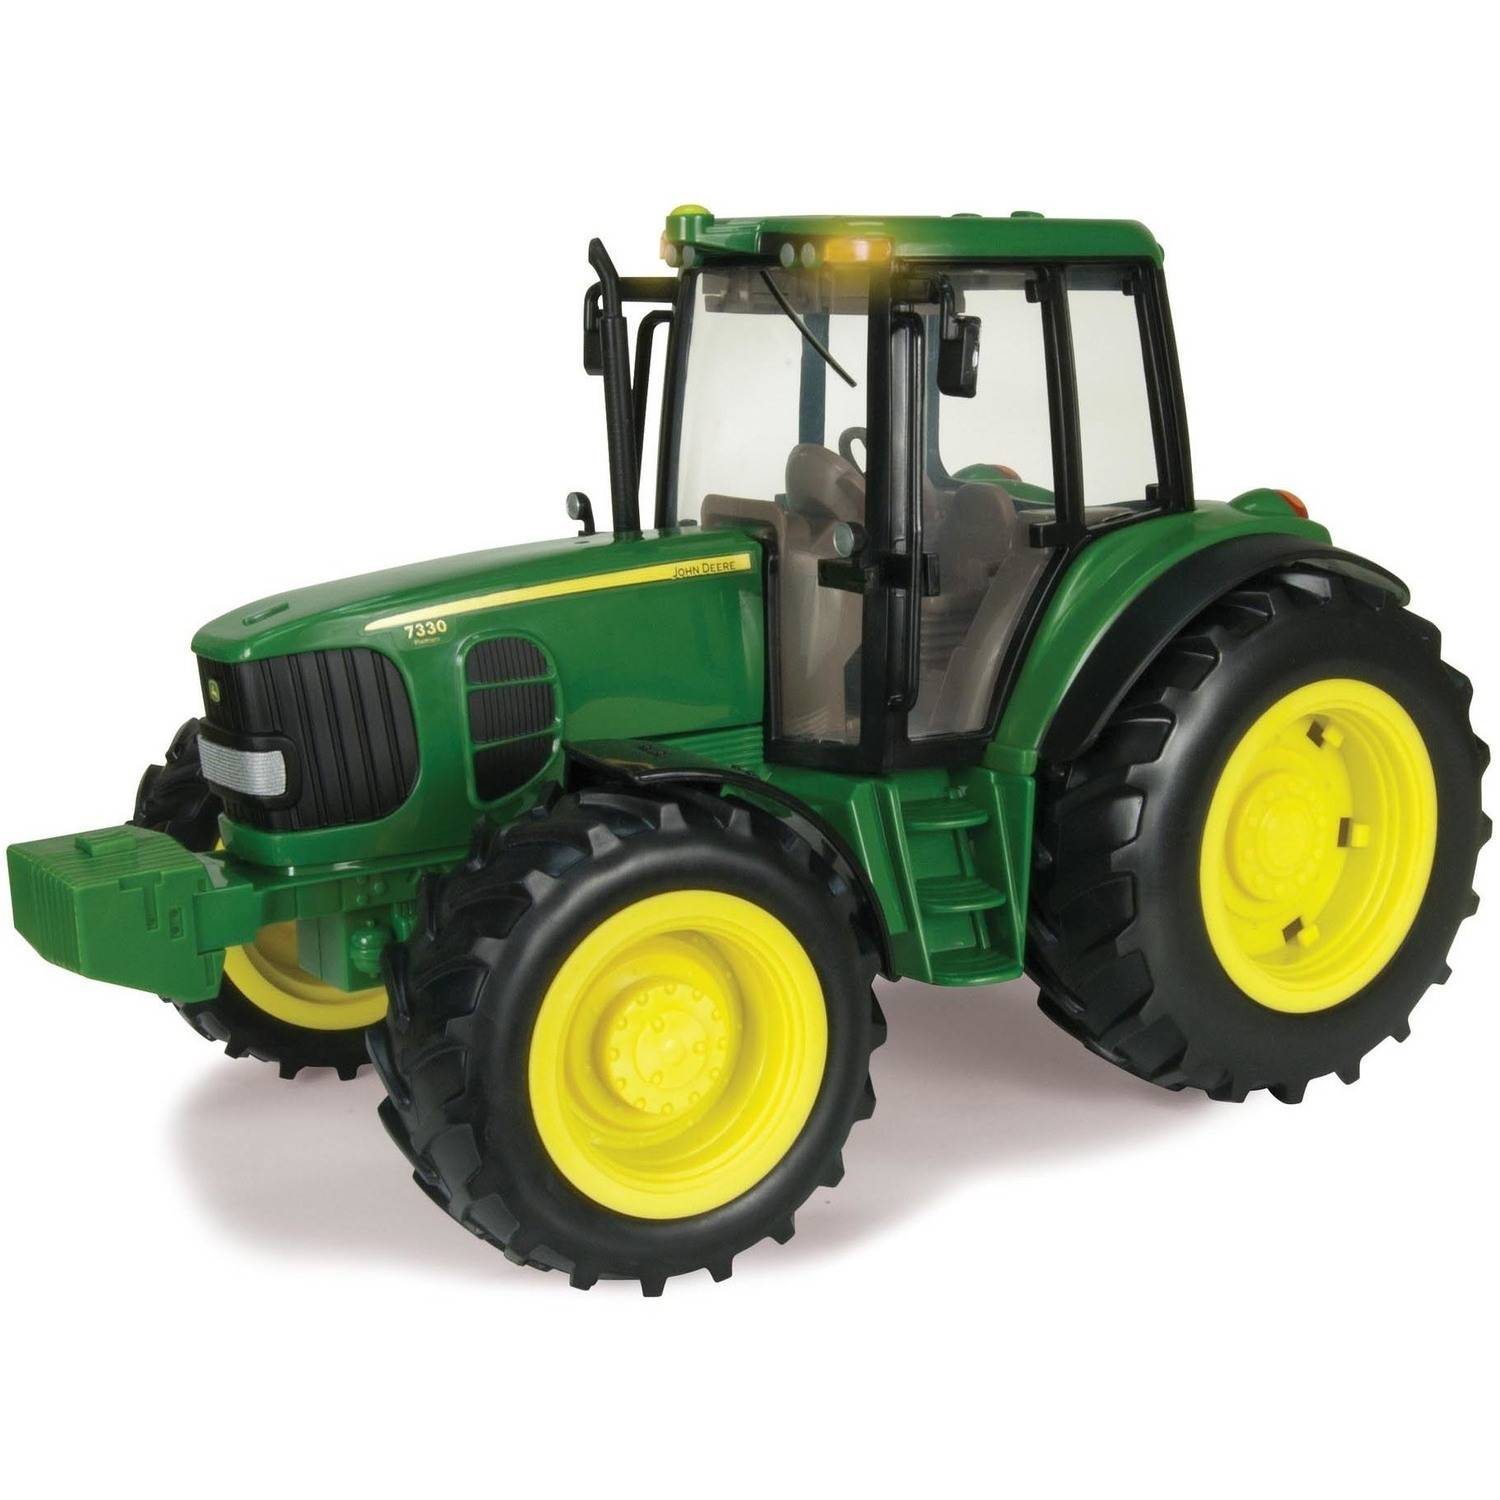 John Deere Big Farm Lights and Sounds Tractor by TOMY